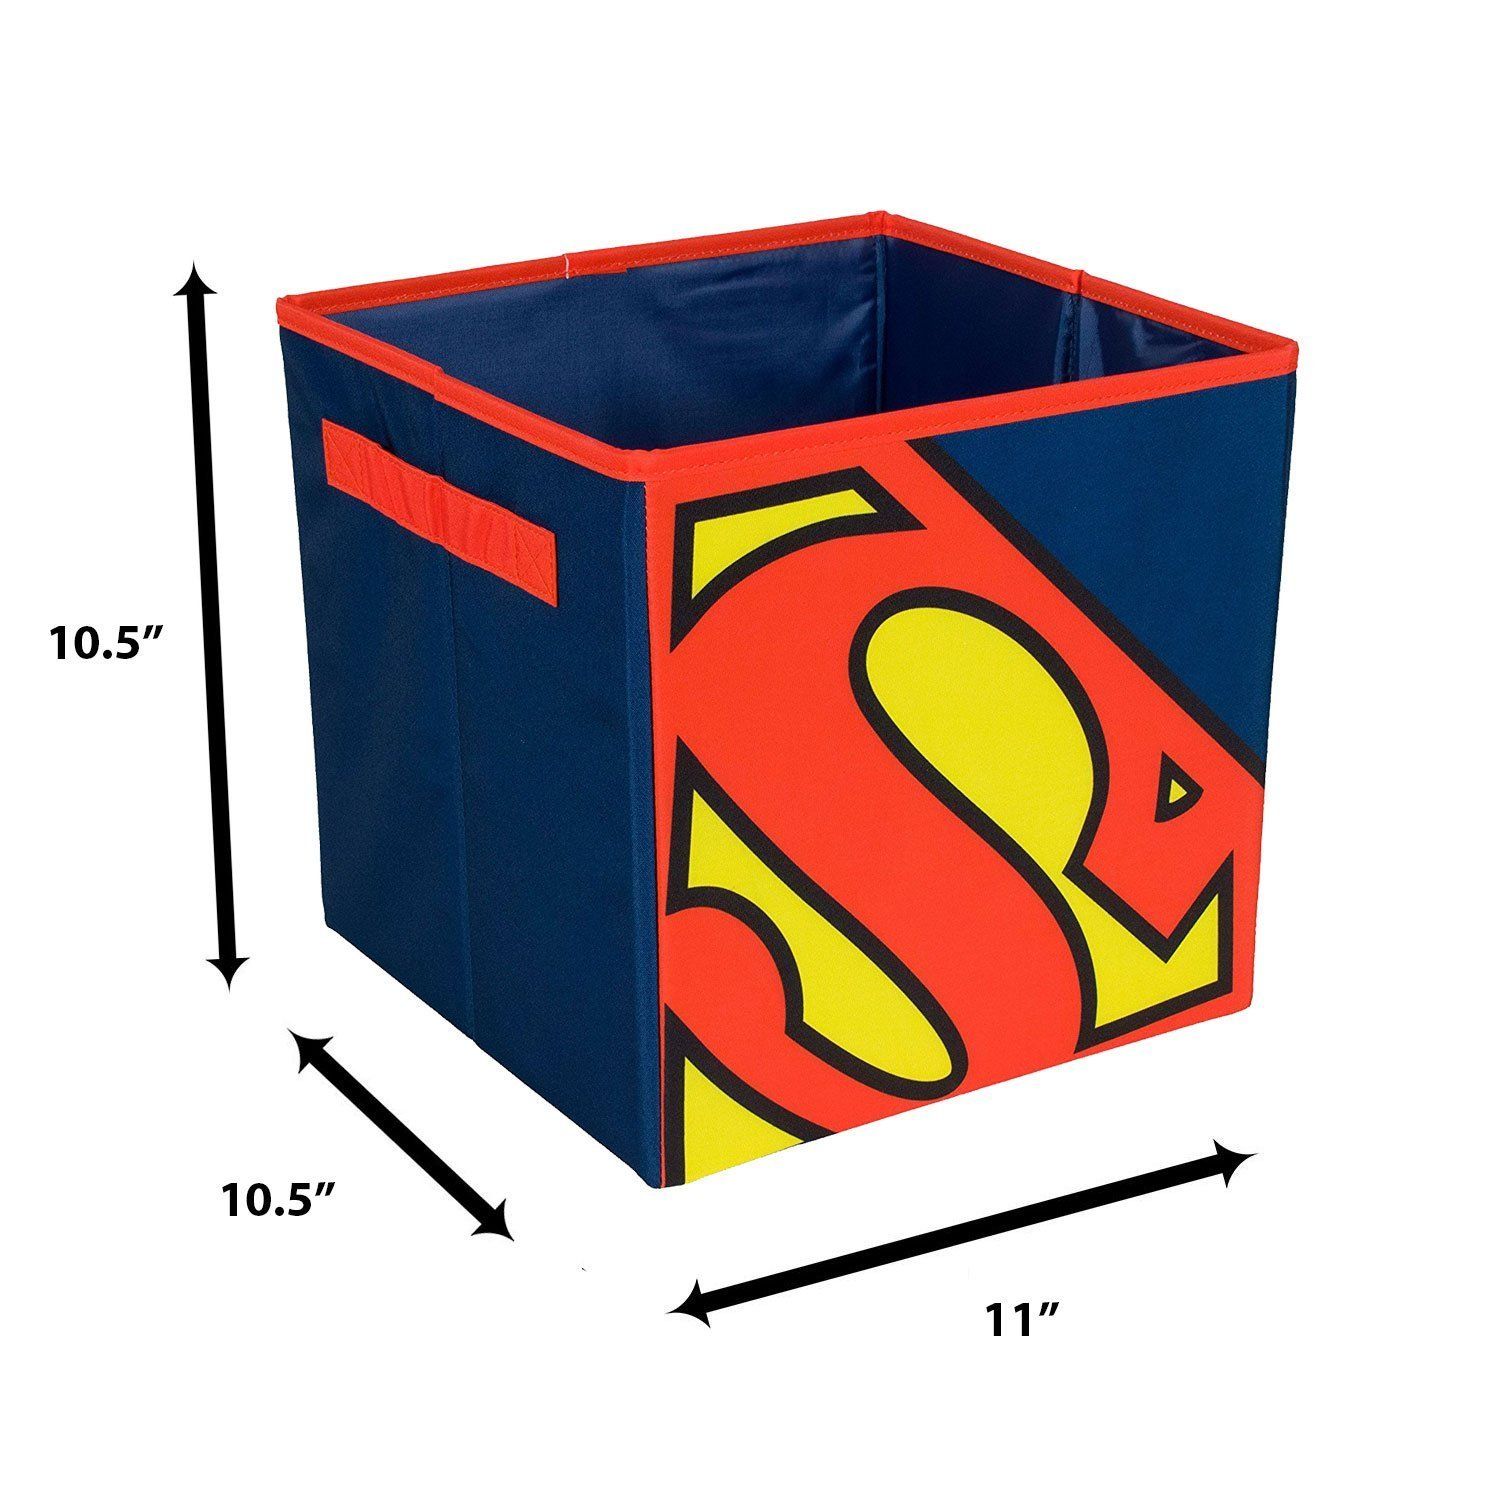 Everything Mary Superman Collapsible Storage Bin by DC Comics - Cube Organizer for Closet, Kids Bedroom Box, Playroom Chest - Foldable Home Decor Basket Container with Strong Handles and Design by Everything Mary (Image #5)